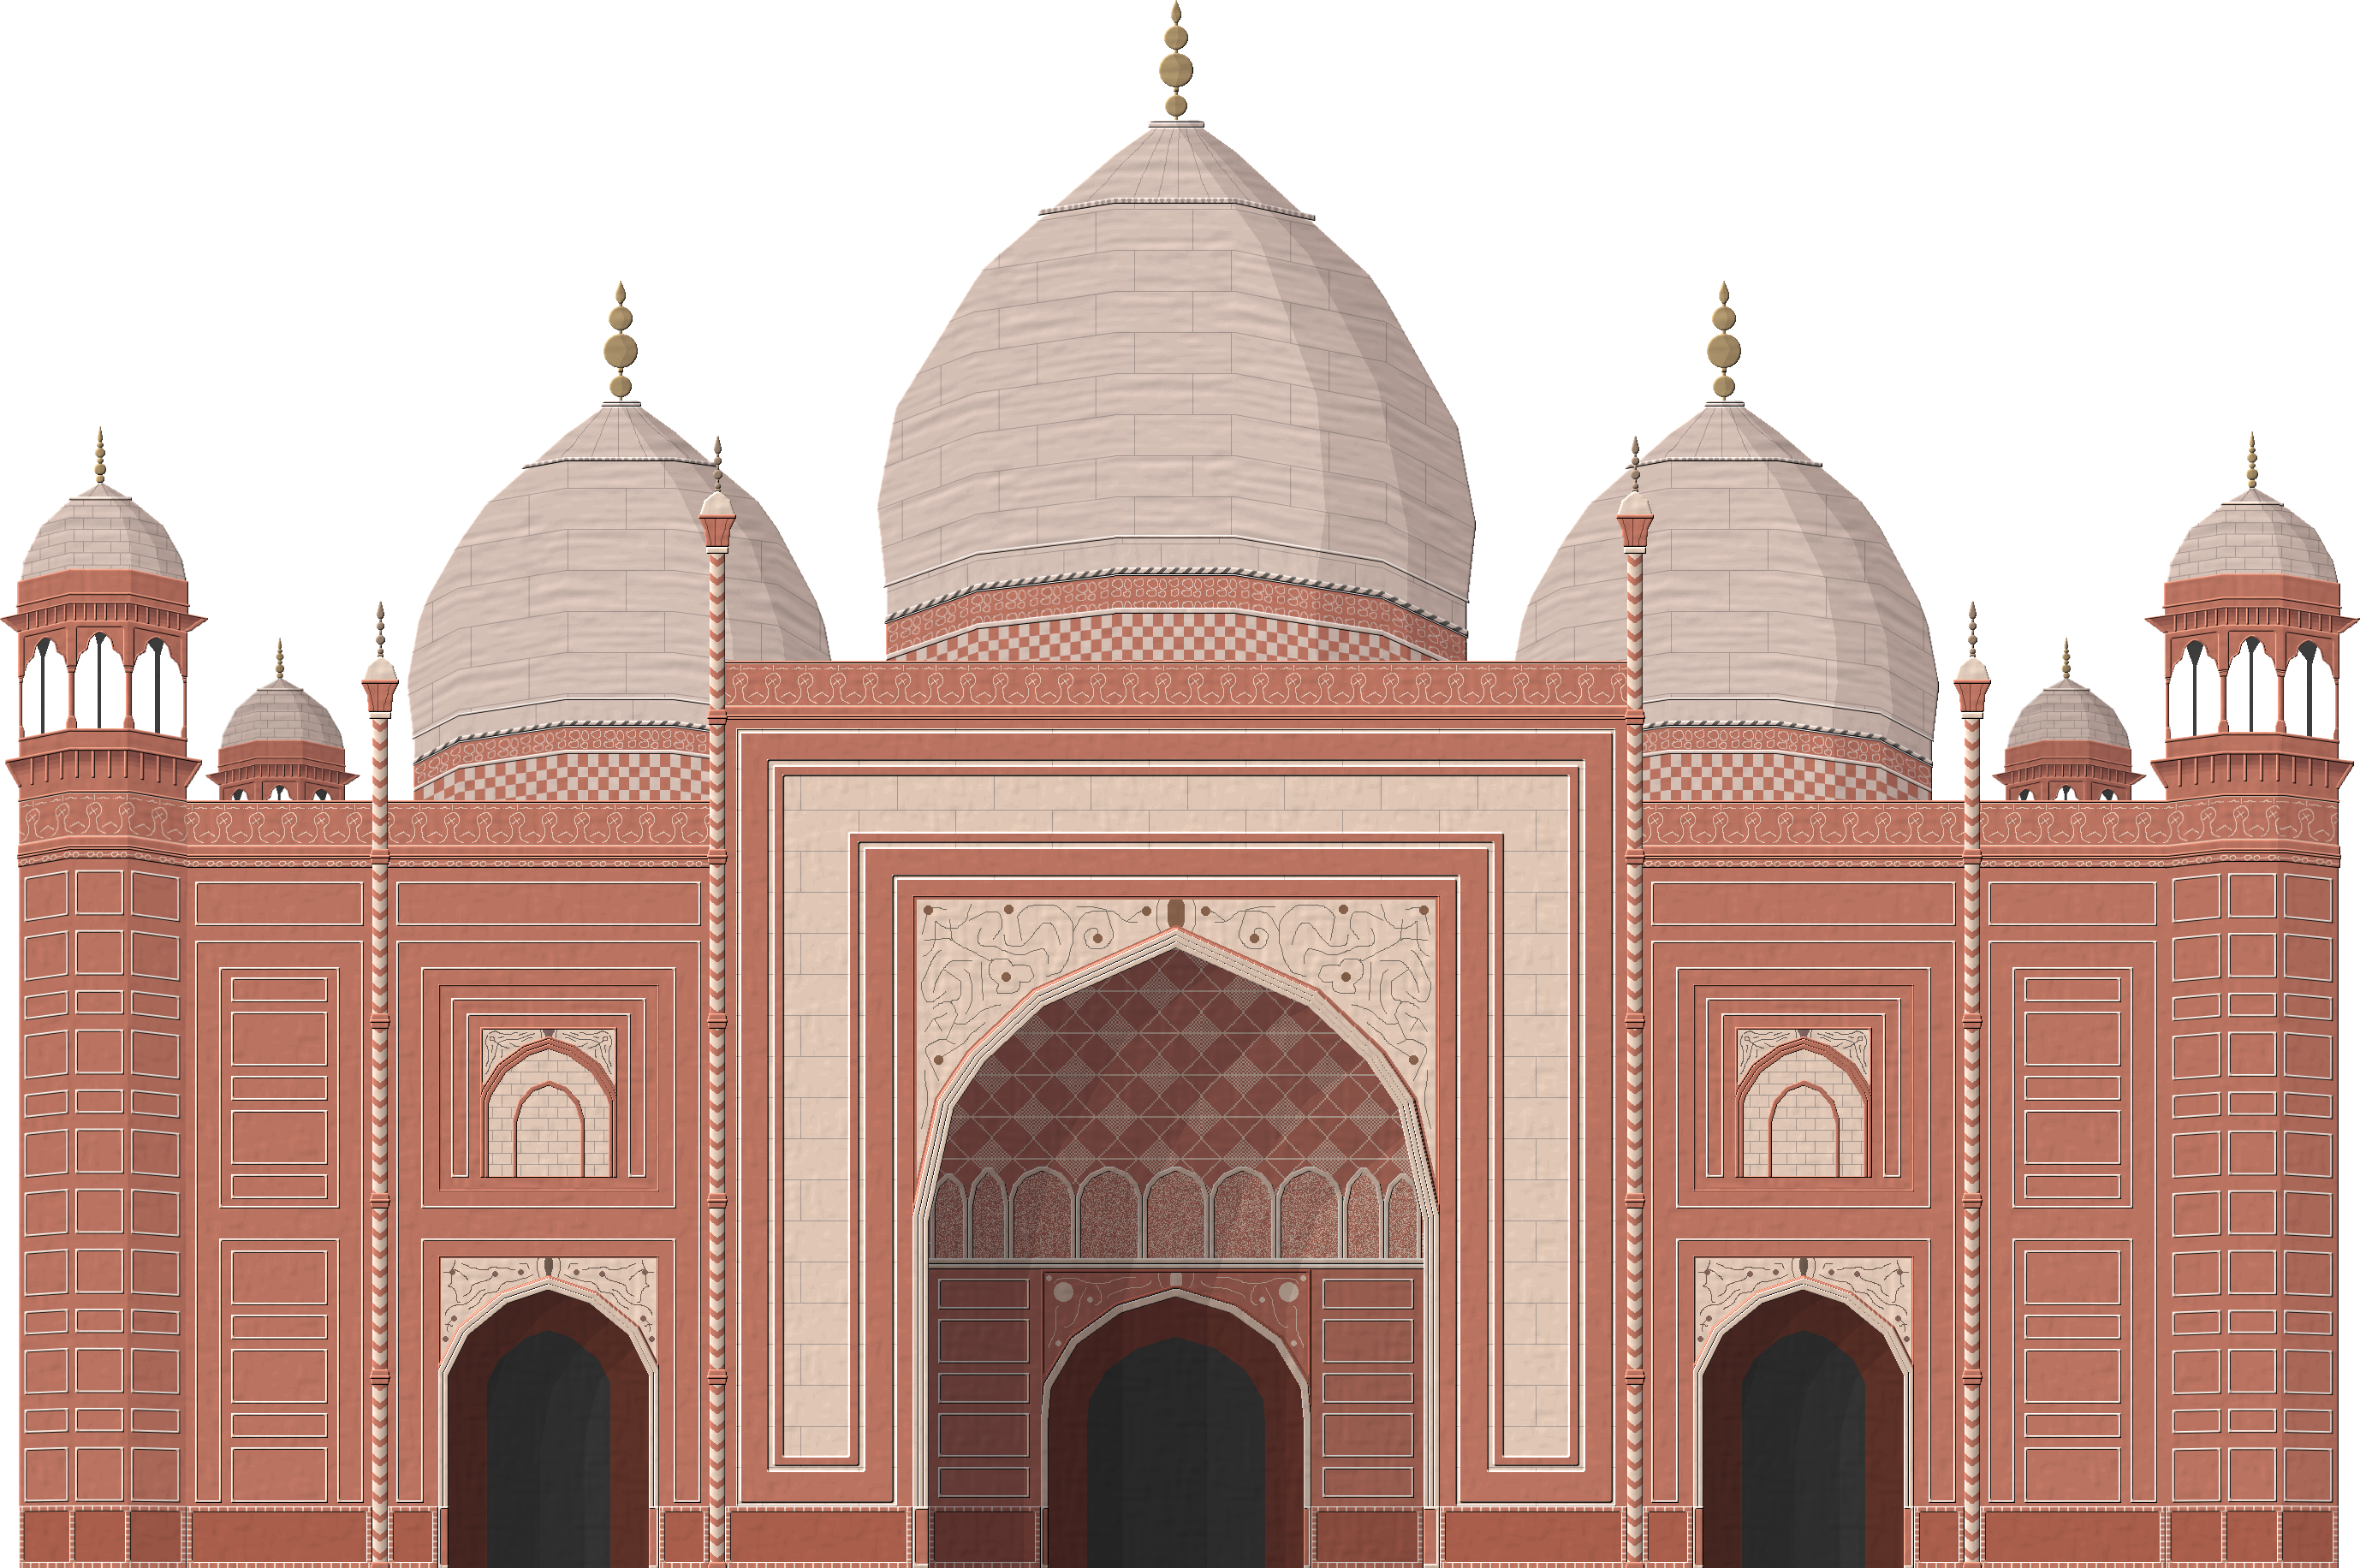 Jerusalem Drawing Islamic Architecture Transparent & PNG Clipart